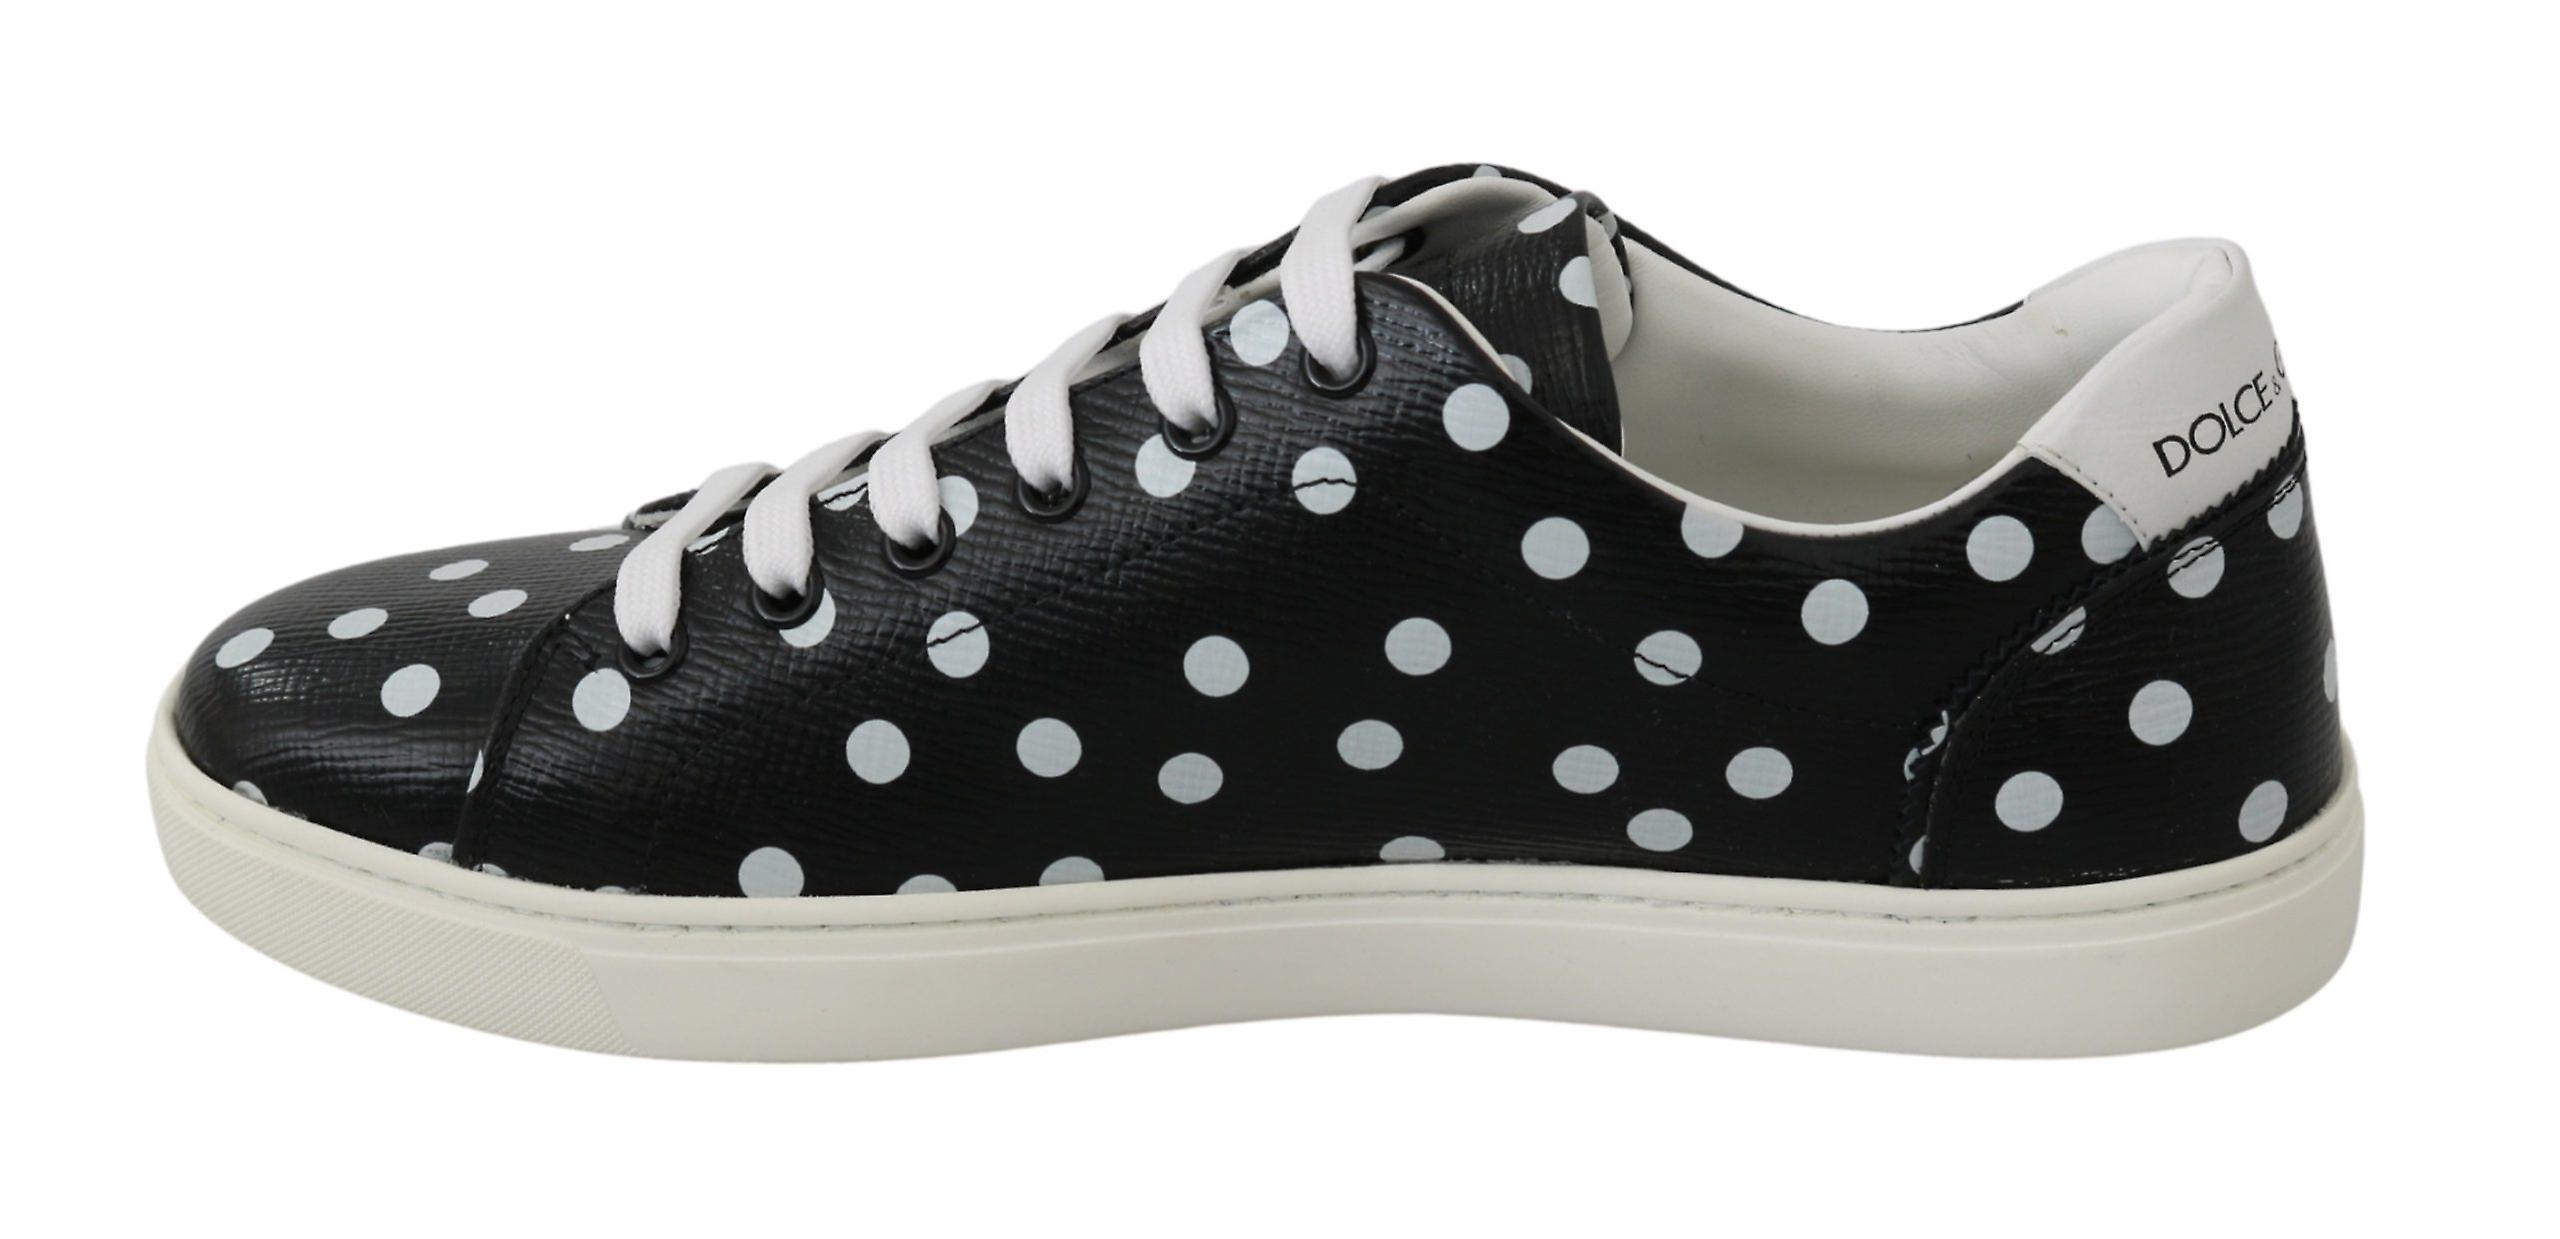 Dolce & Gabbana Black Leather Polka Dots Sneakers Shoes